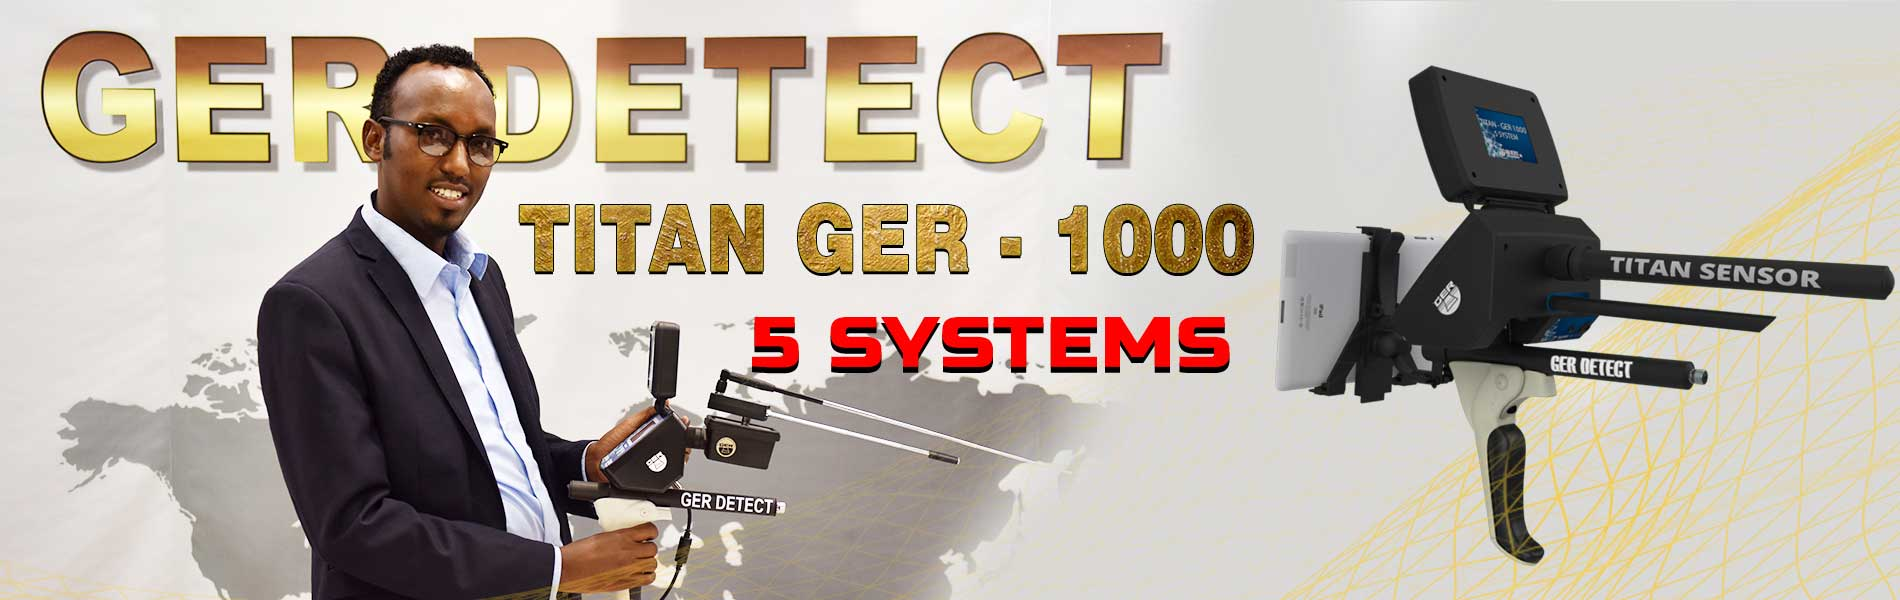 titan-ger-1000-gold-and-metal-detector